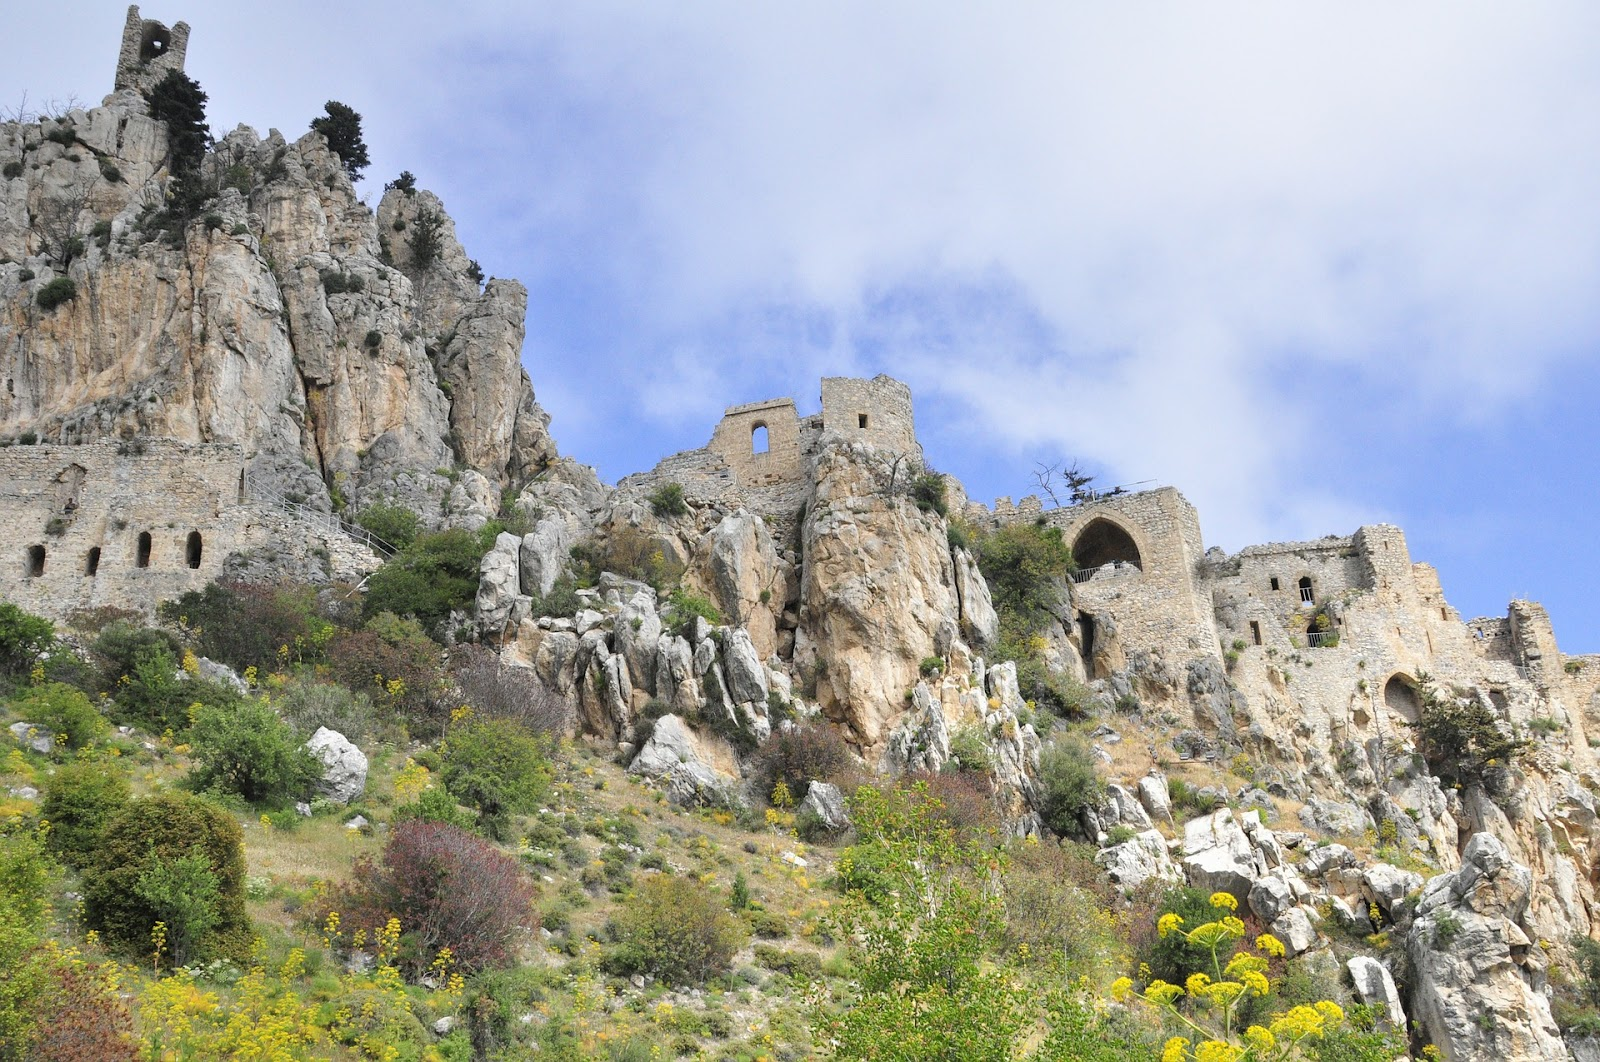 st hilarion castle on top of large cliff mountain in northern cyprus. the ruins can be accessed from a small mountain road. cloudy day in cyprus